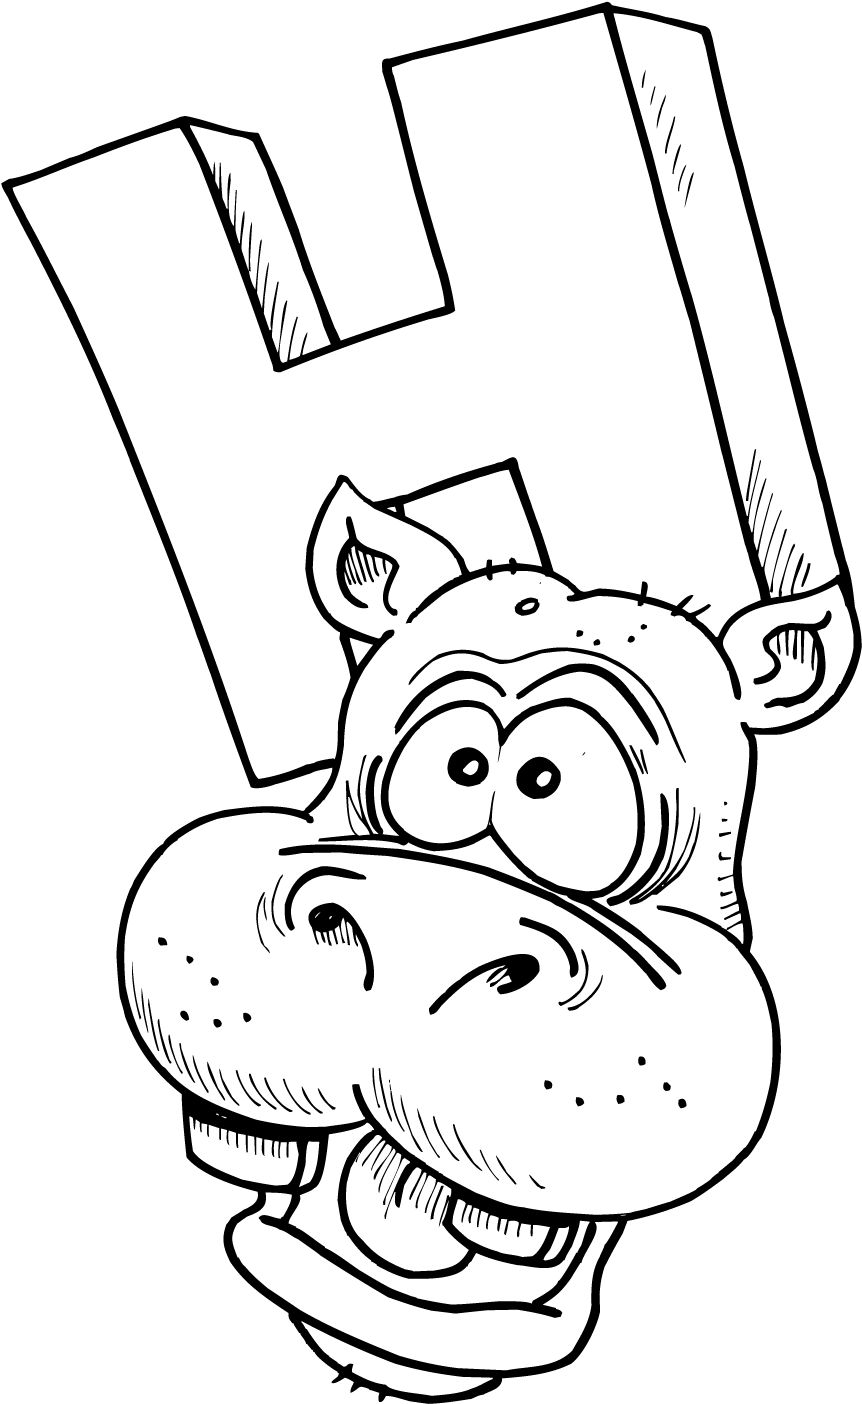 colouring page of letter h with a hippo | School - Africa | Pinterest